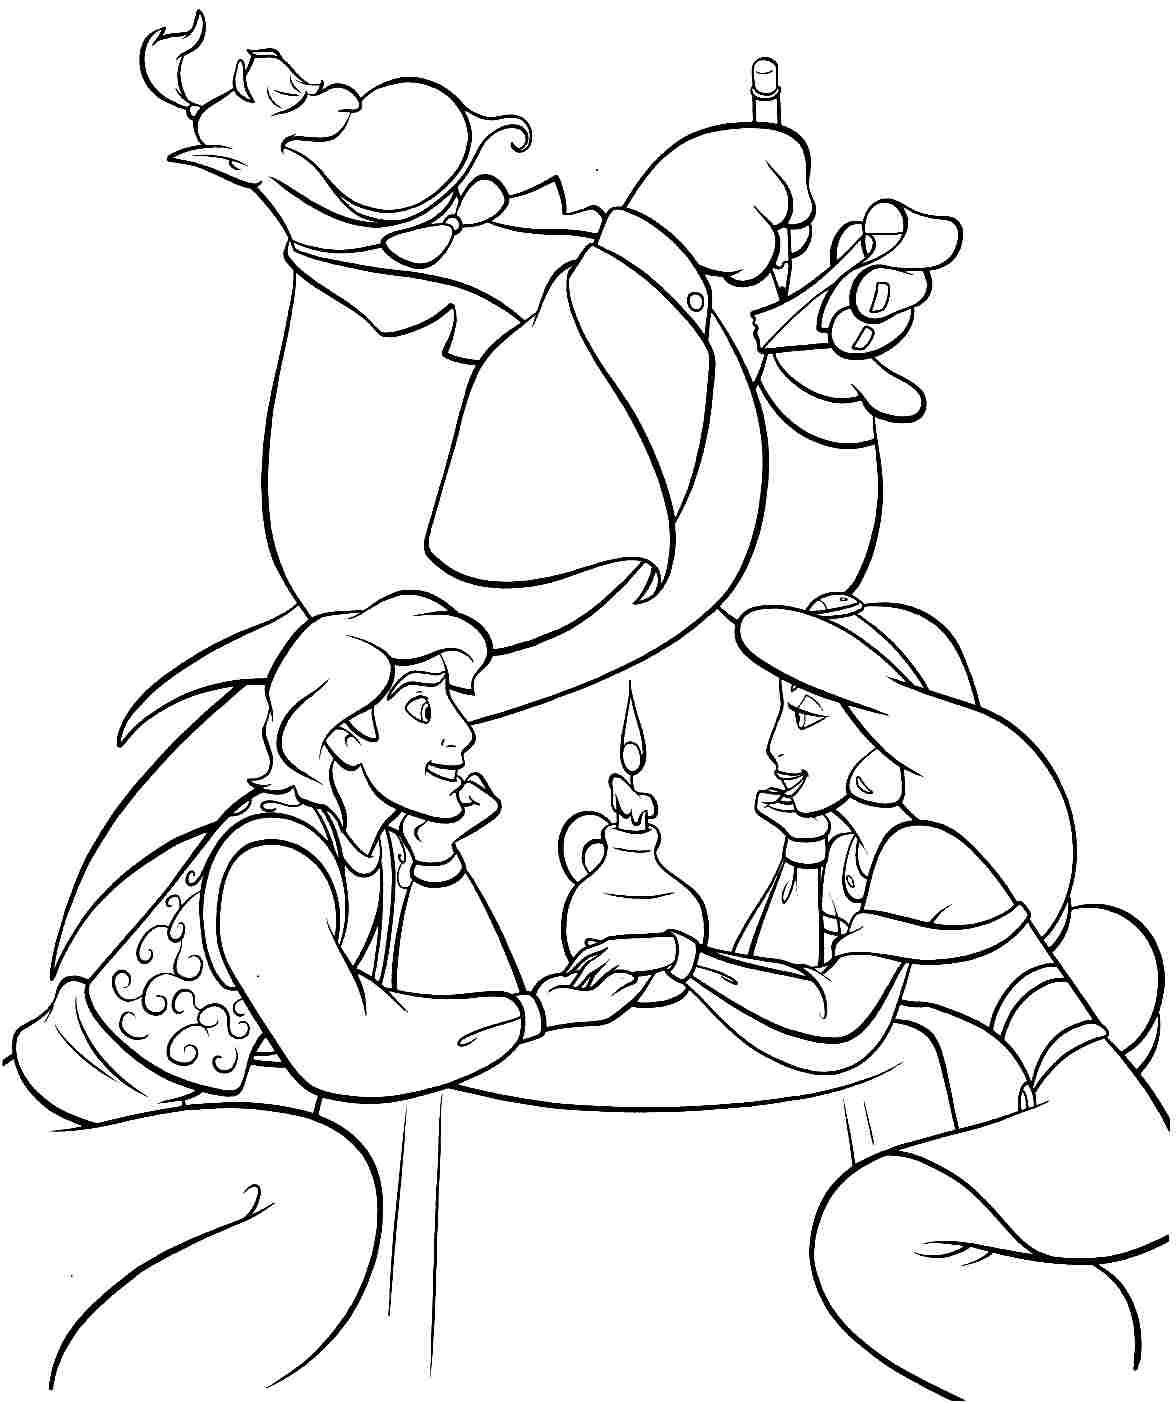 Free Printable Disney Princess Aladdin Colouring Pages For Little Kids